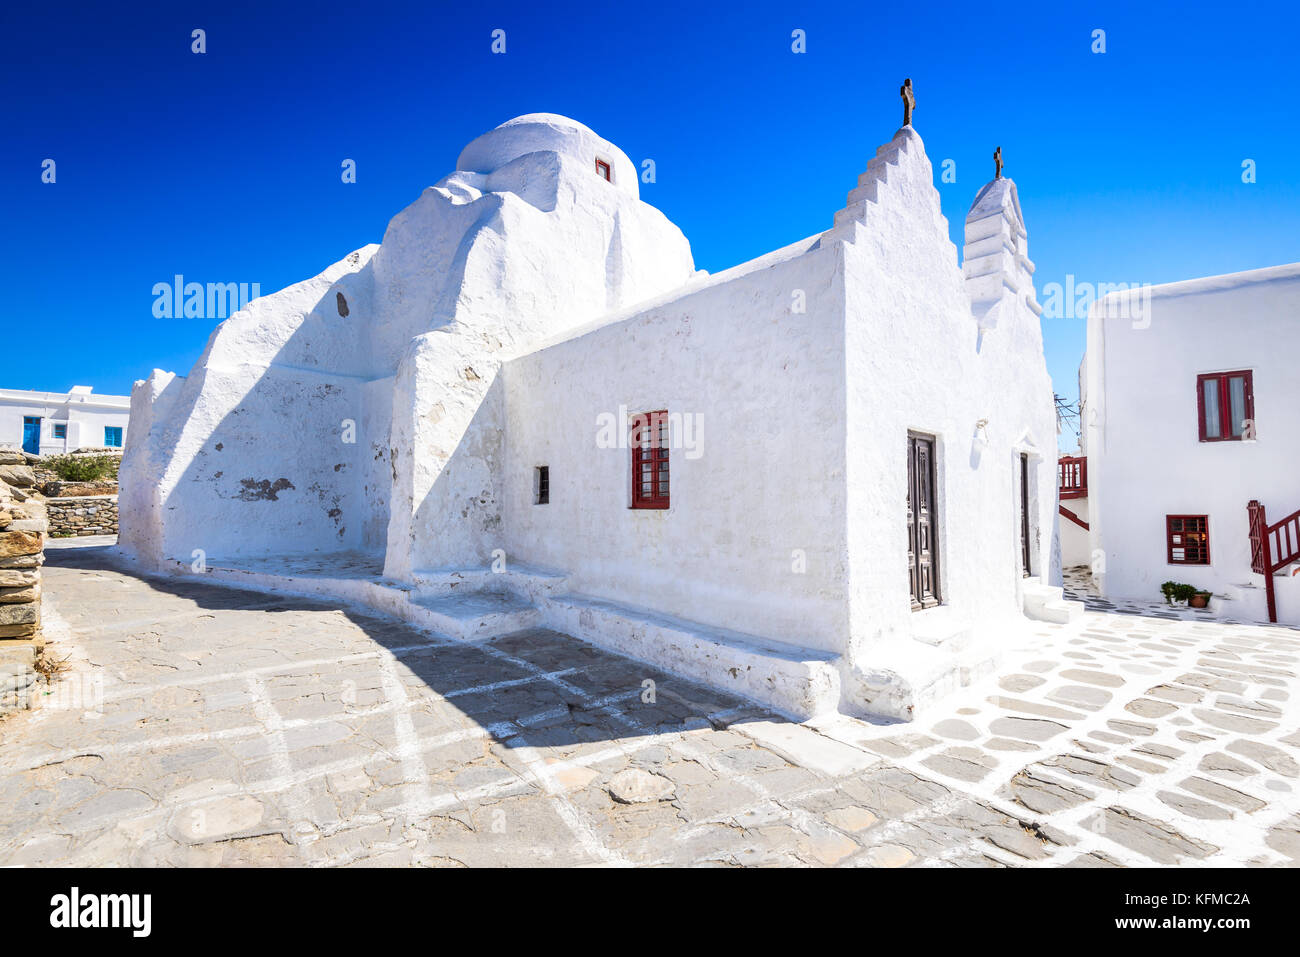 Mykonos, Greece. Paraportiani, one of the most famous architectural structures in Greek Islands. - Stock Image